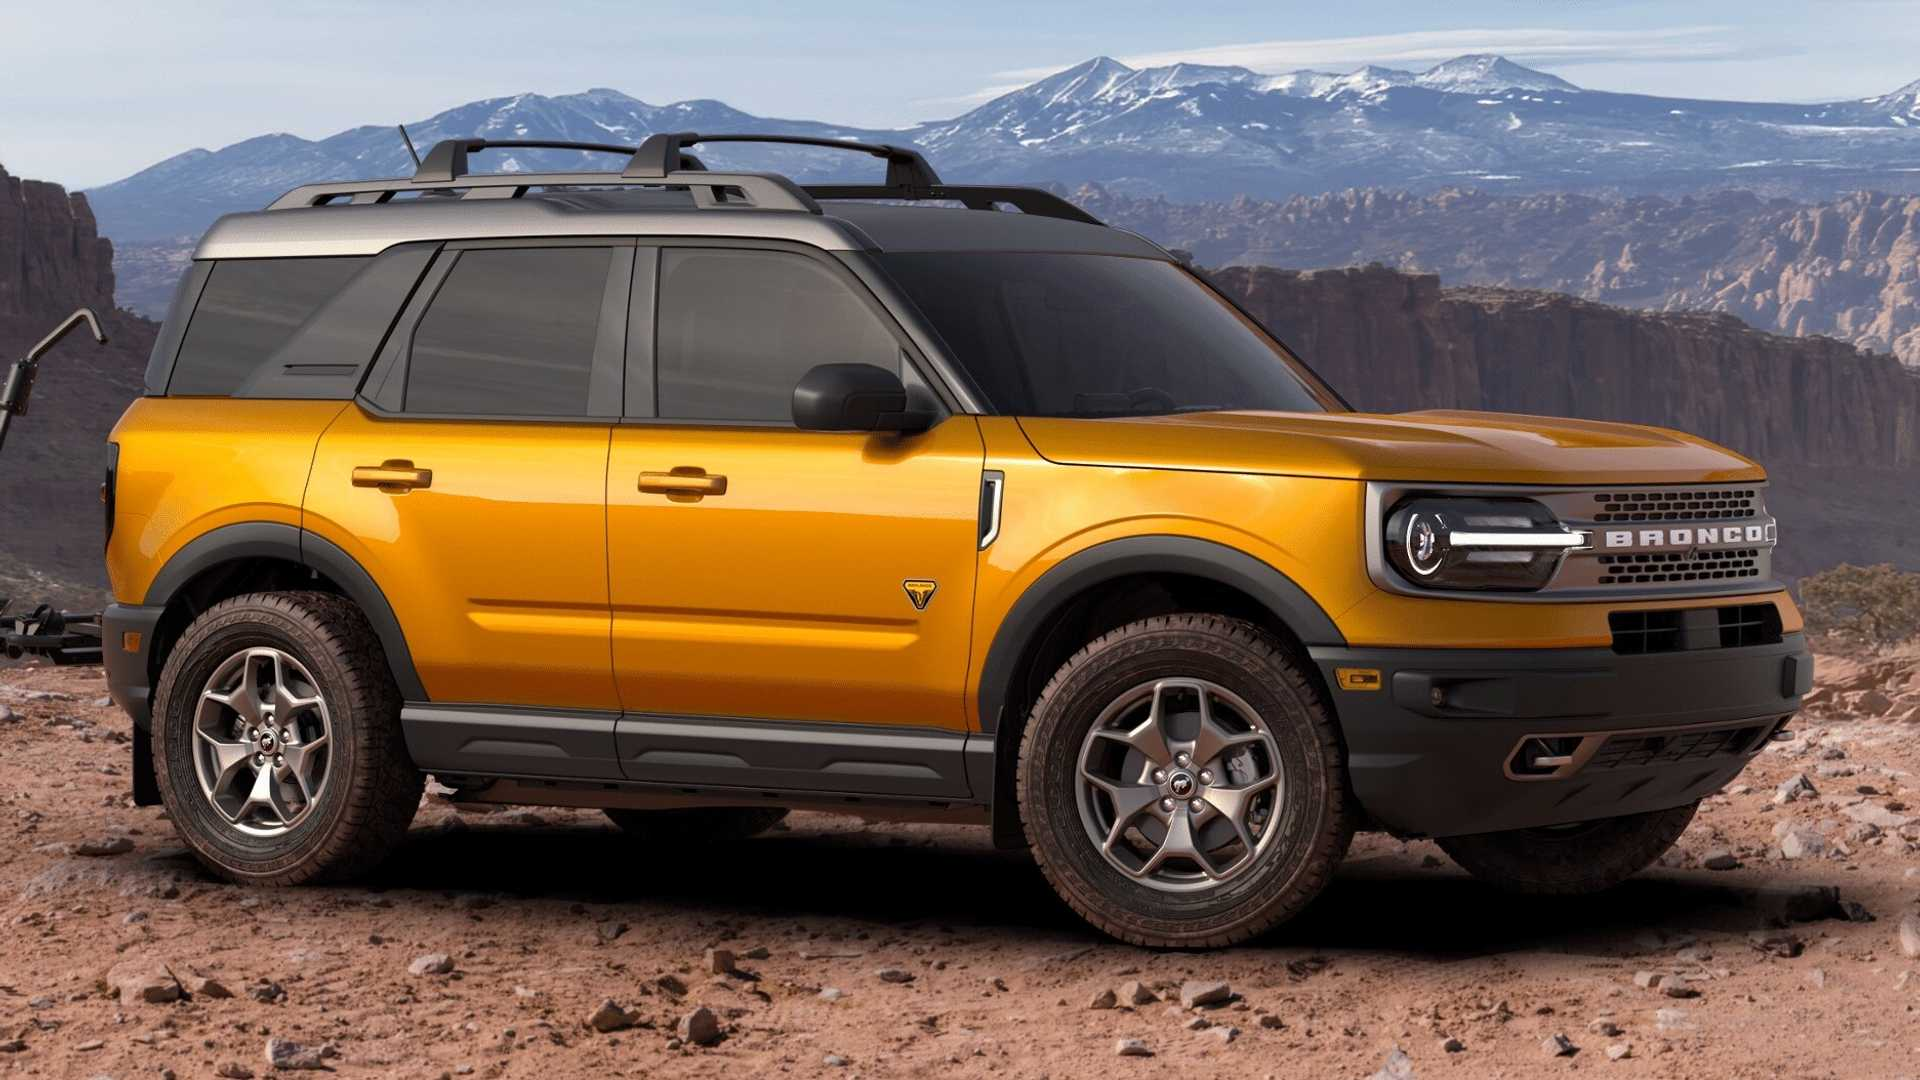 Latest model 2021 ford bronco release date, price ...